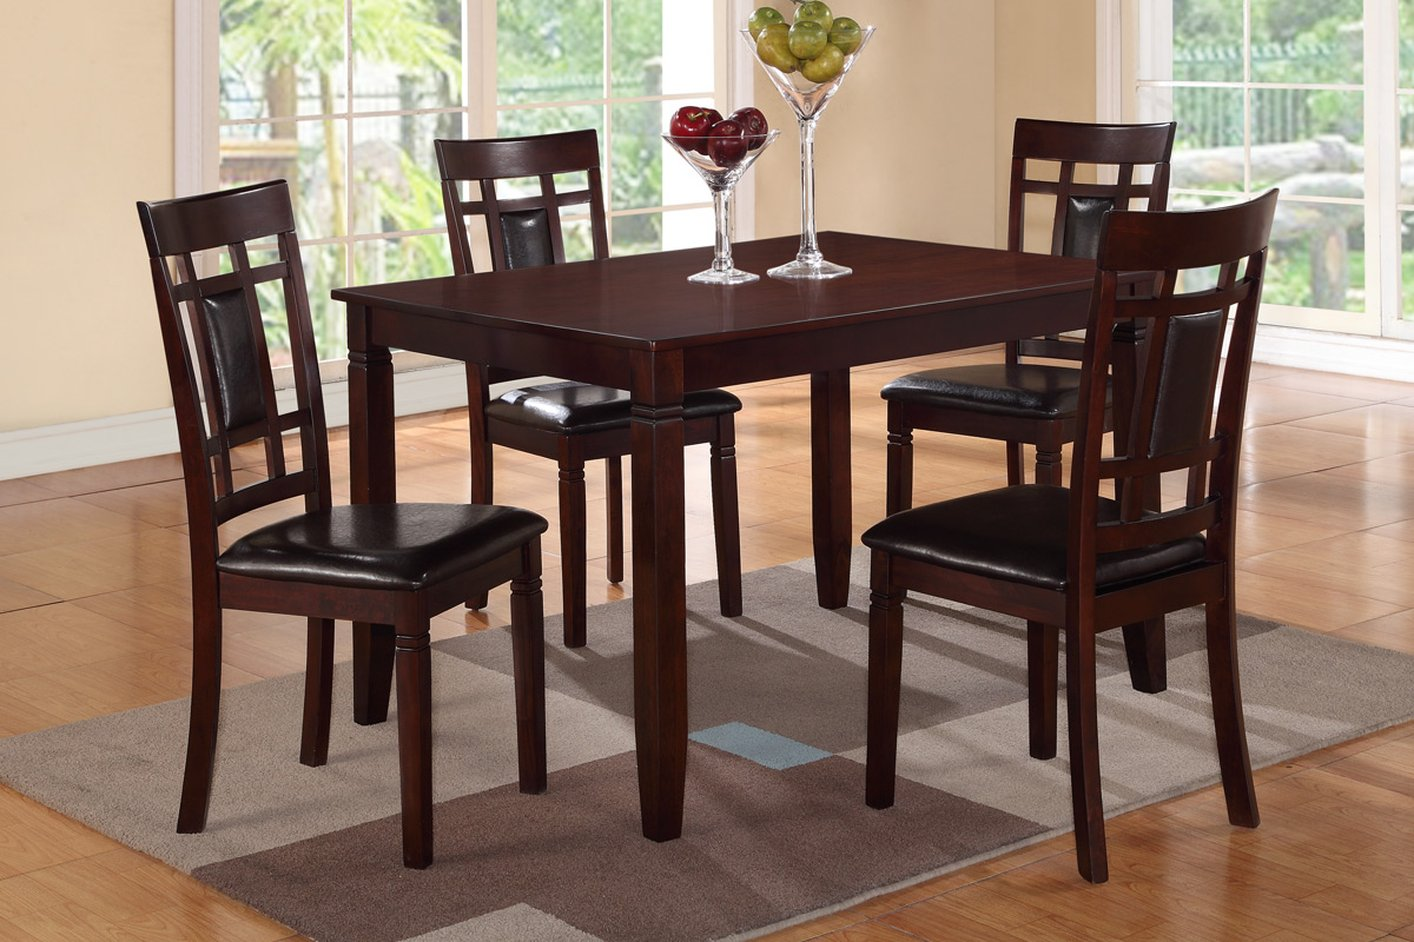 poundex f2232 brown leather dining table and chair set